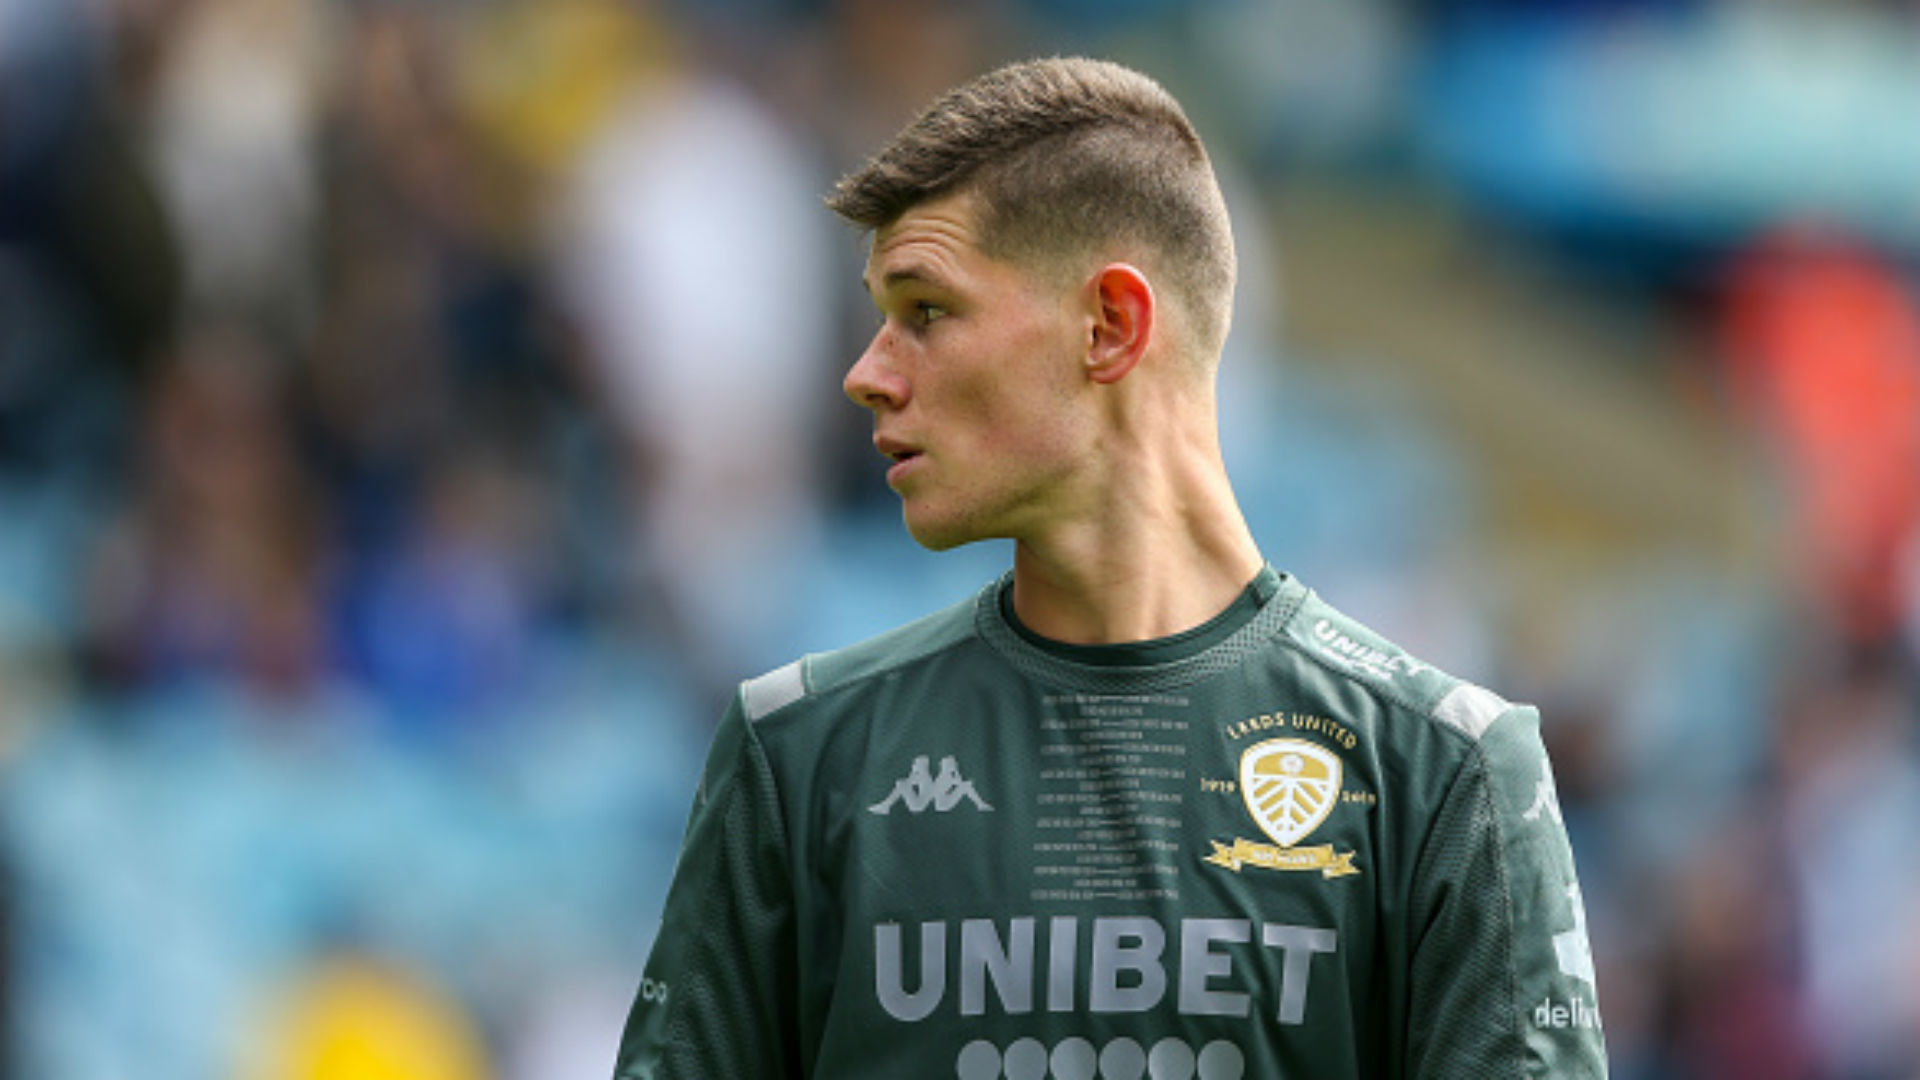 'Football is a religion in Leeds!' - Meslier hails 'crazy' fans as he waits for first-team opportunity